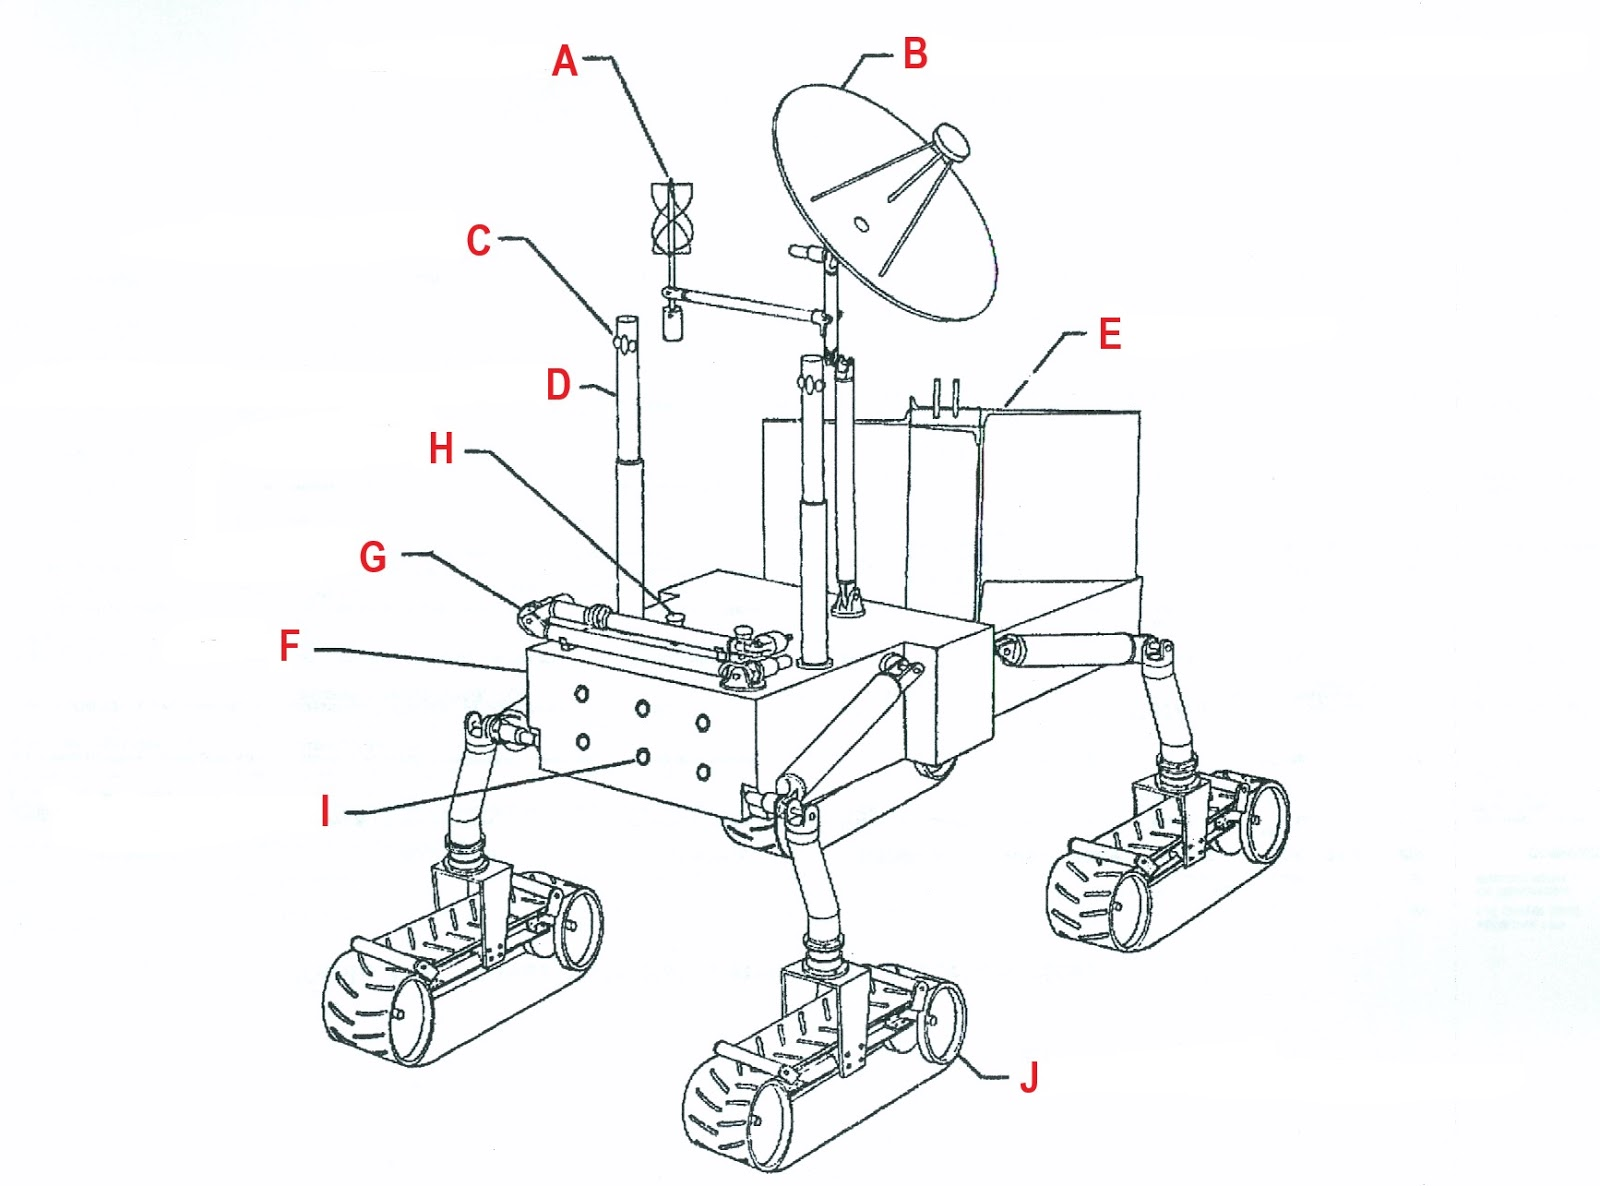 curiosity rover diagram how to apply eyeshadow mars engine and wiring